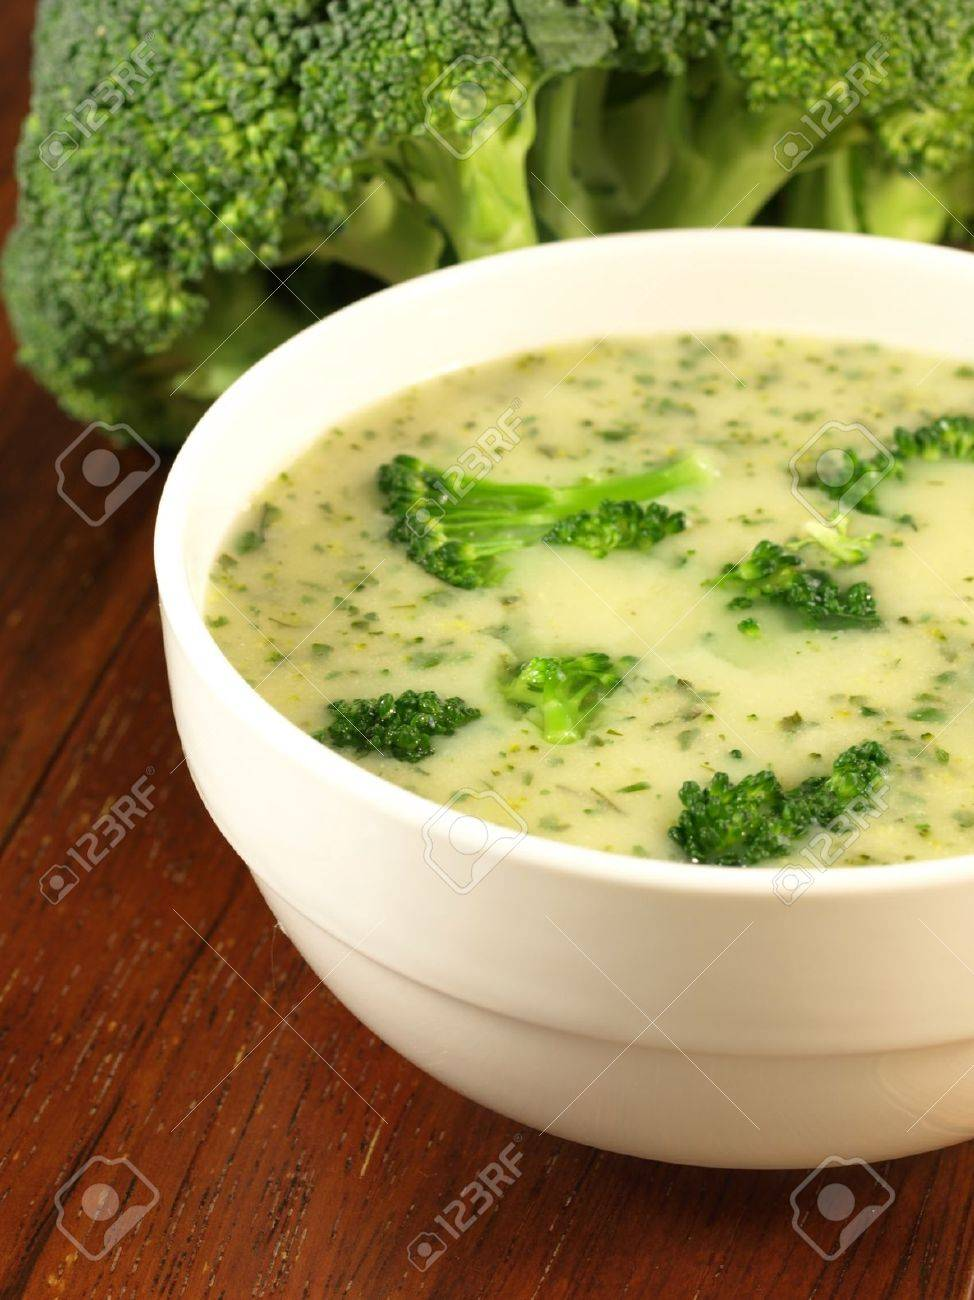 Creamy soup with broccoli served in white bowl Stock Photo - 13211602